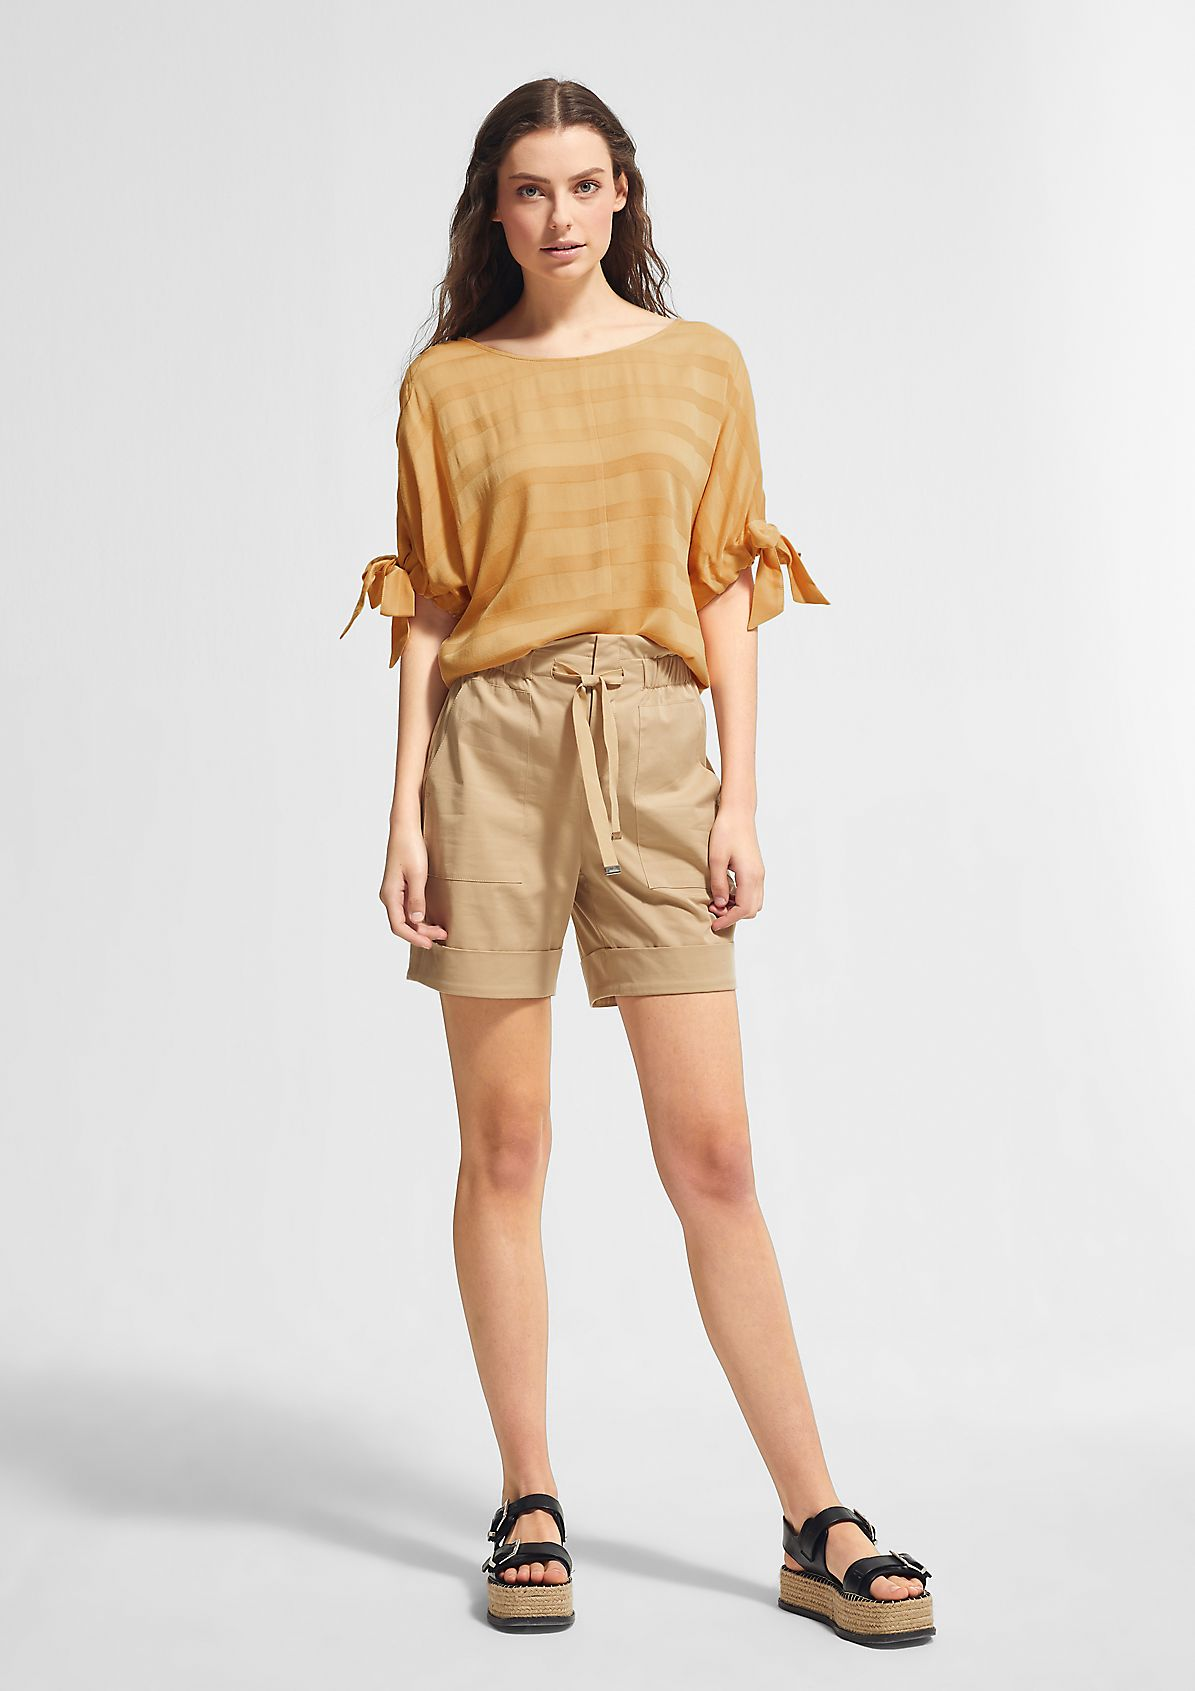 Blouse with drawstring details from comma